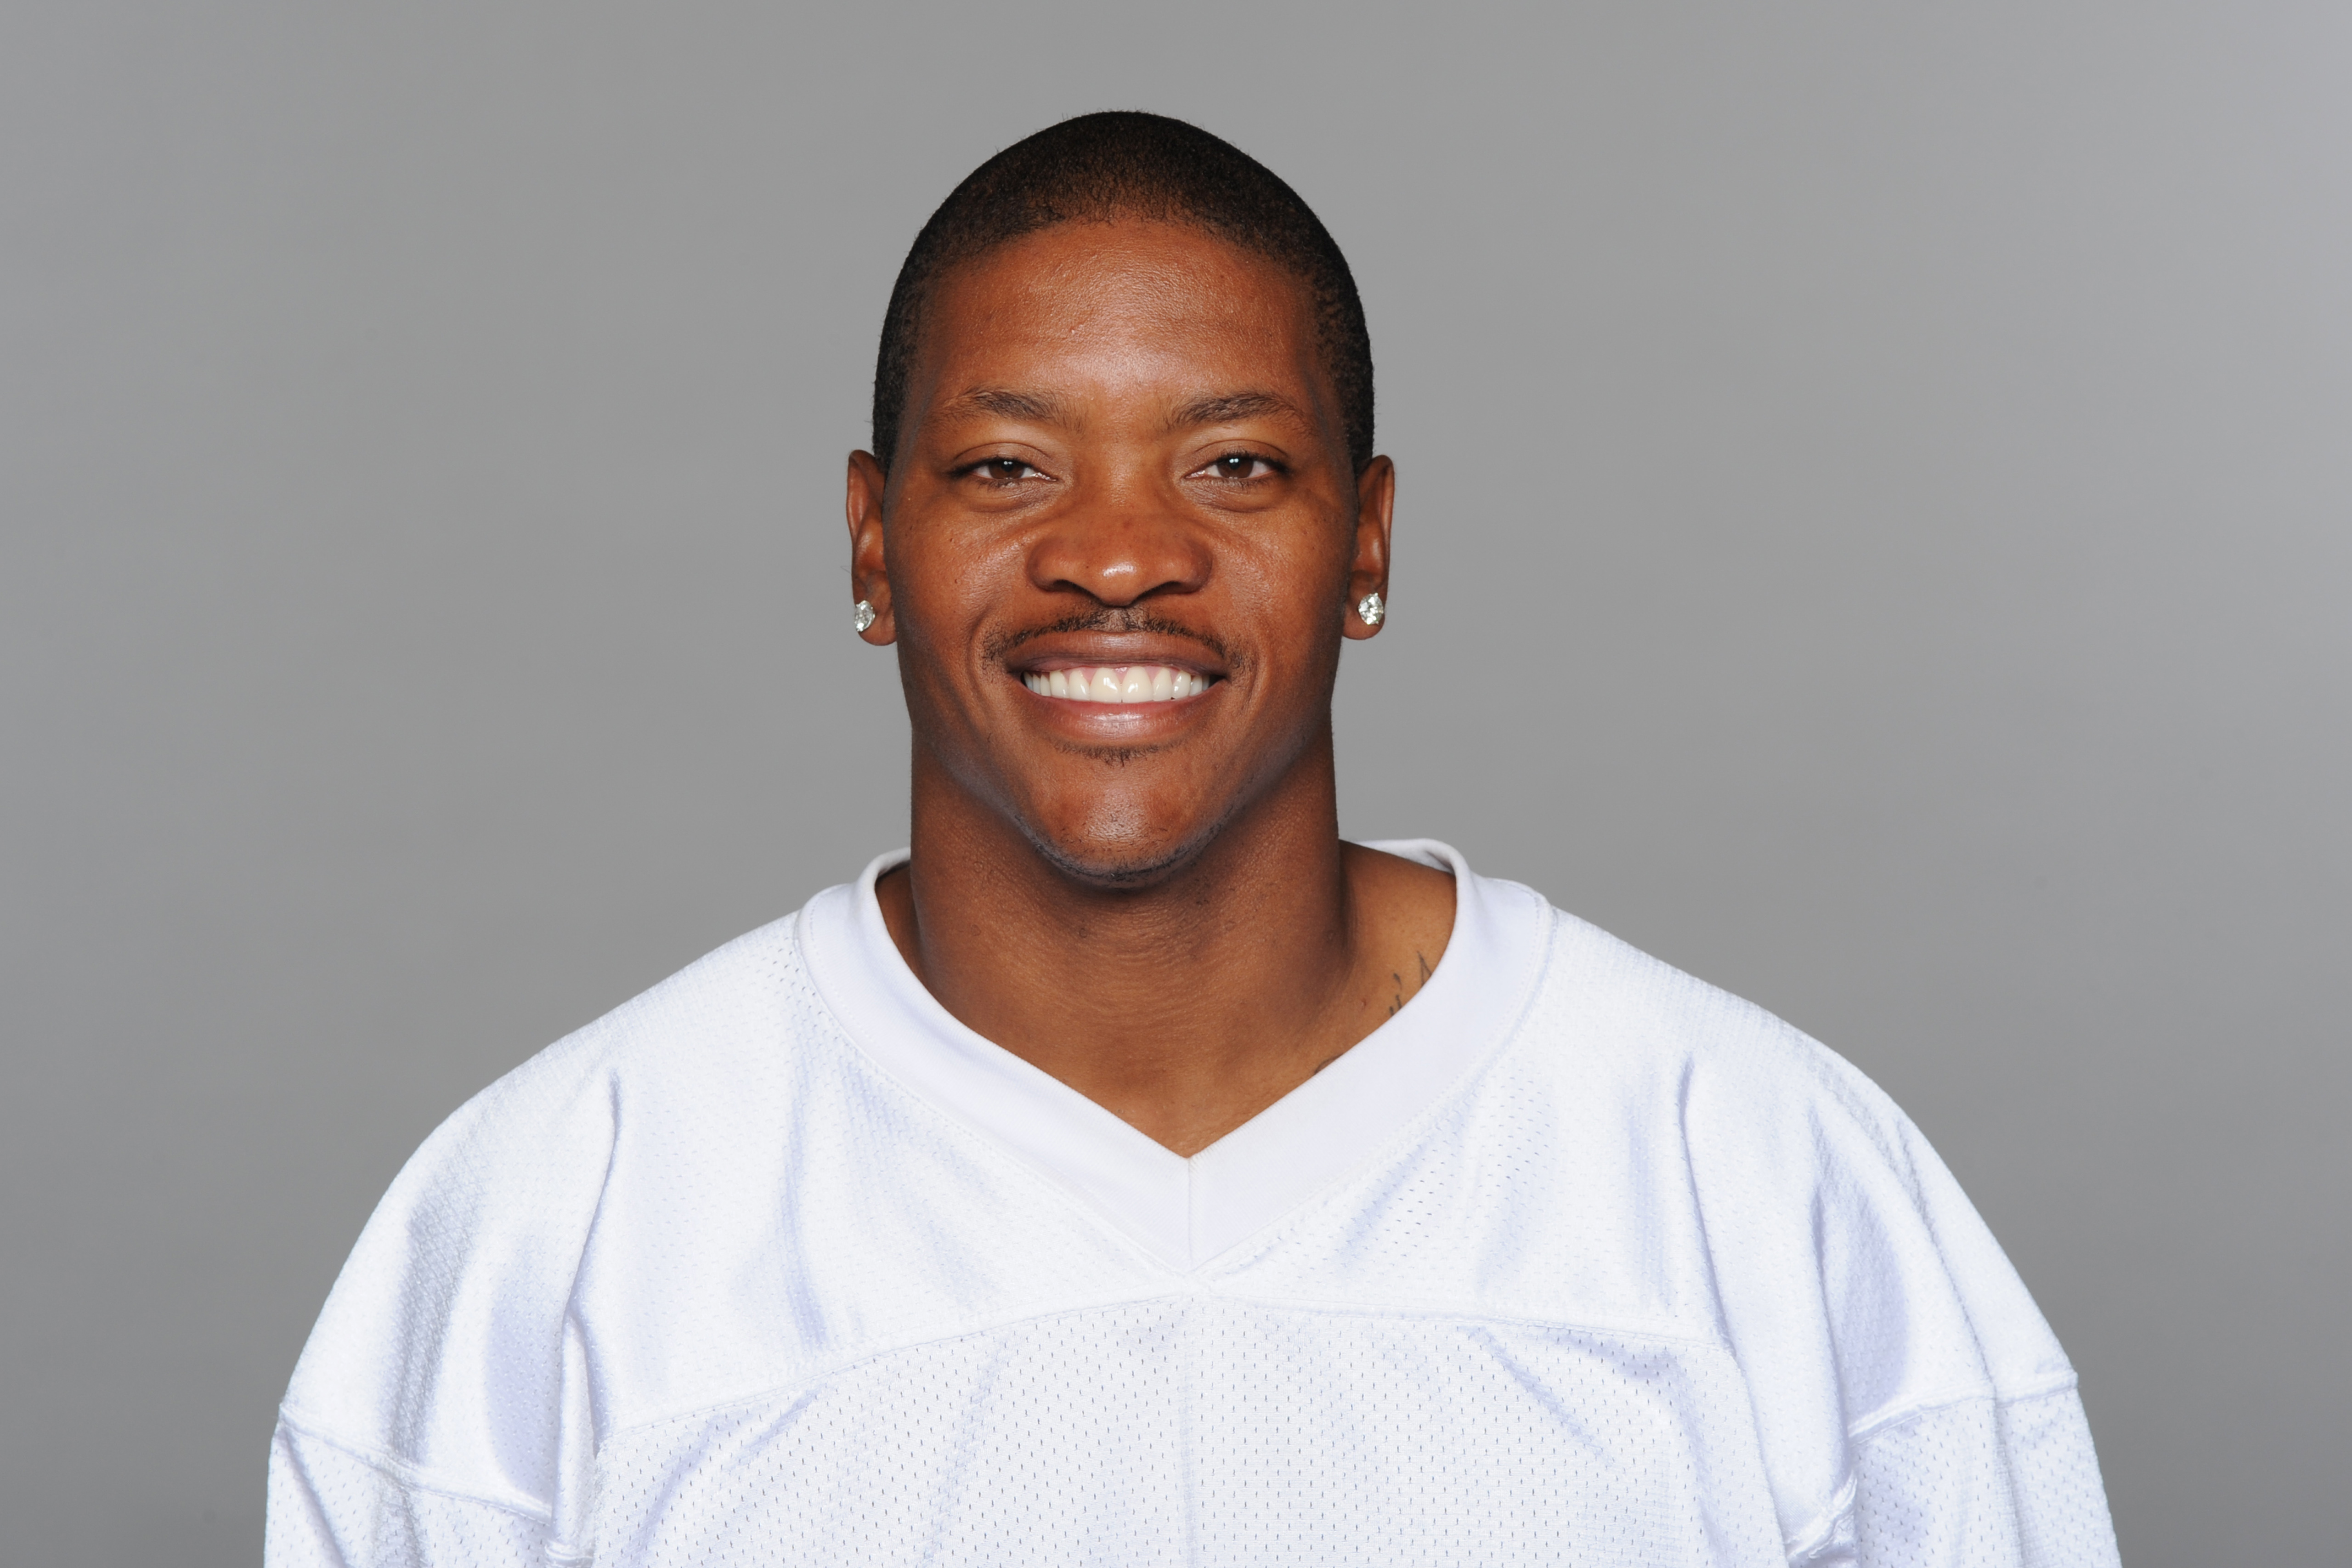 In this handout image provided by the NFL, Will Allen of the Miami Dolphins poses for his NFL headshot circa 2011. (Getty)